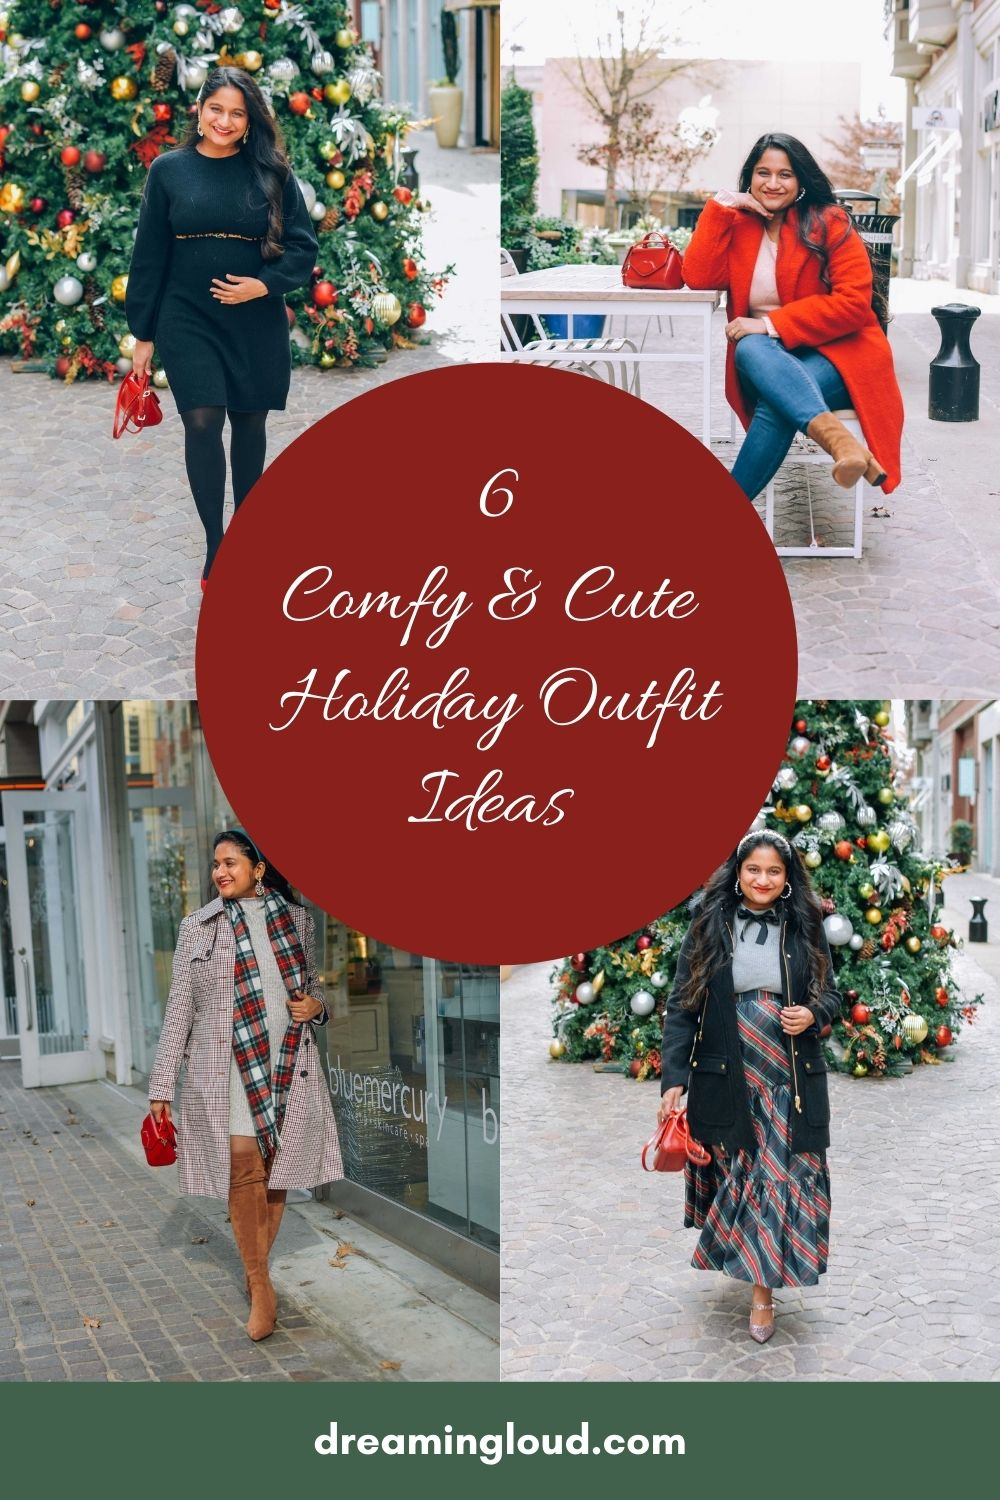 6 Comfy and Cute Holiday Outfit Ideas | Cute Holiday Outfit Ideas by popular Maryland modest fashion blog, Dreaming Loud: Pinterest image of a woman wearing cute holiday outfits.